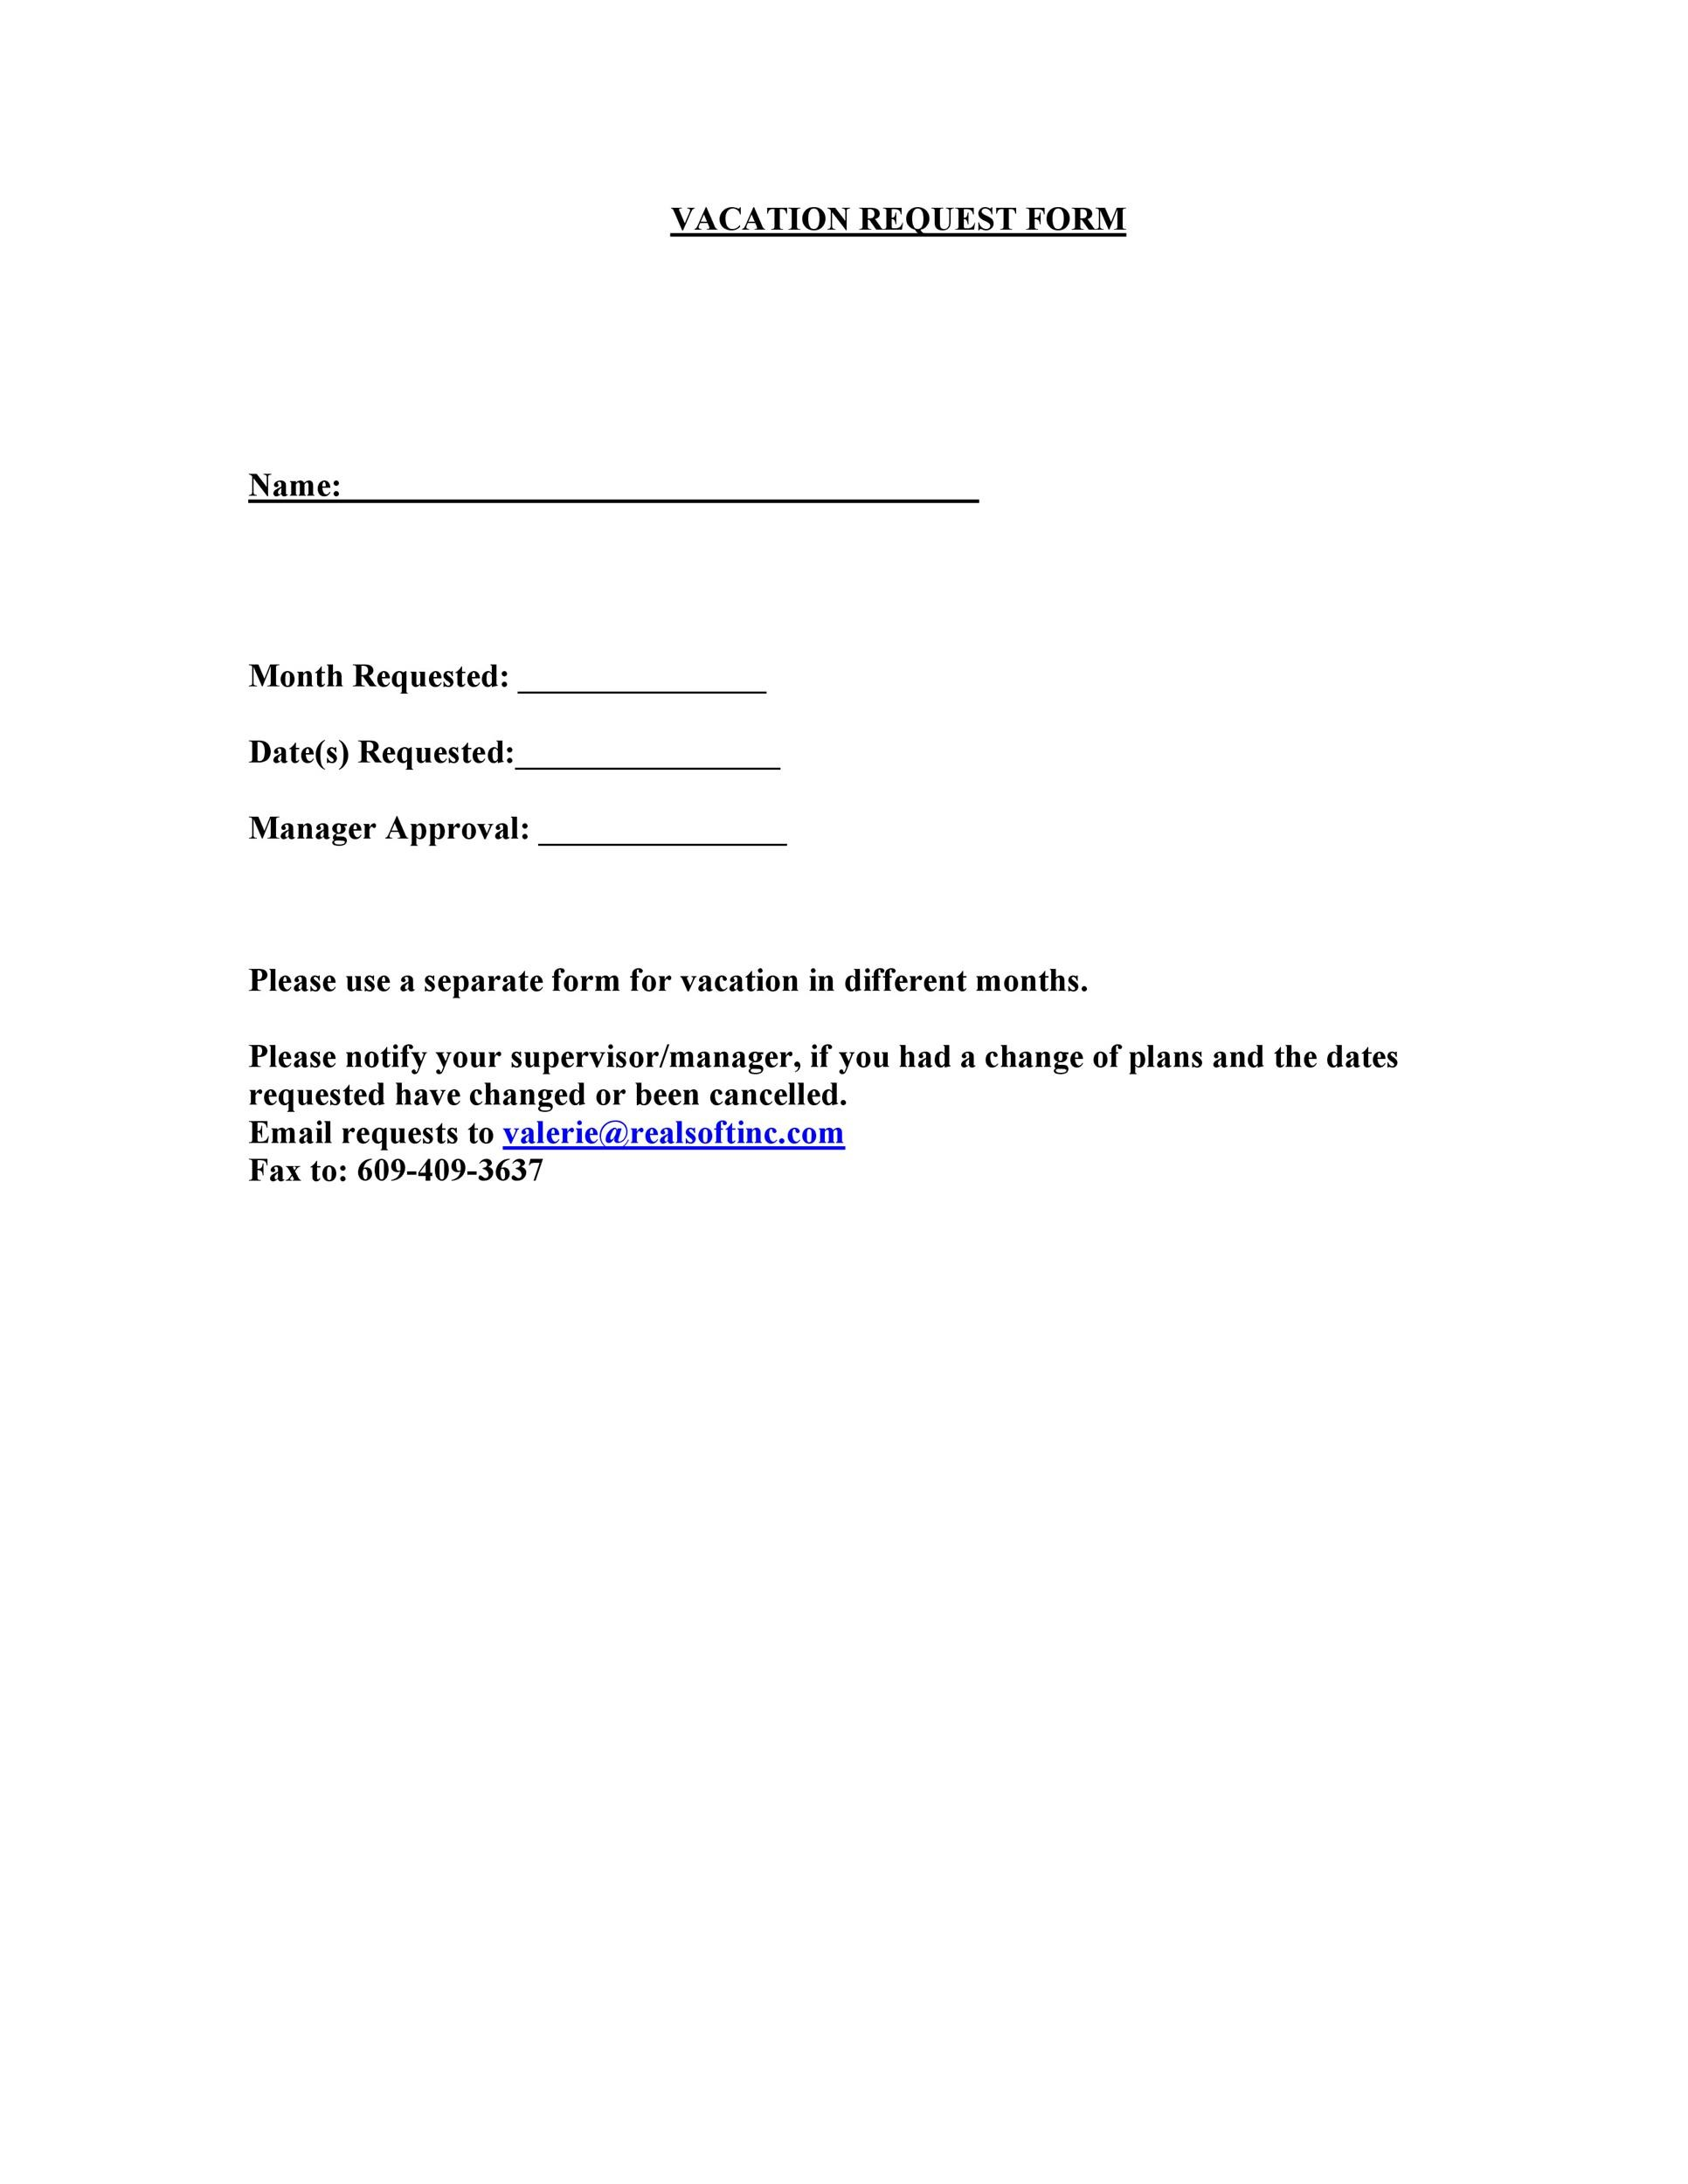 Free vacation request form 22